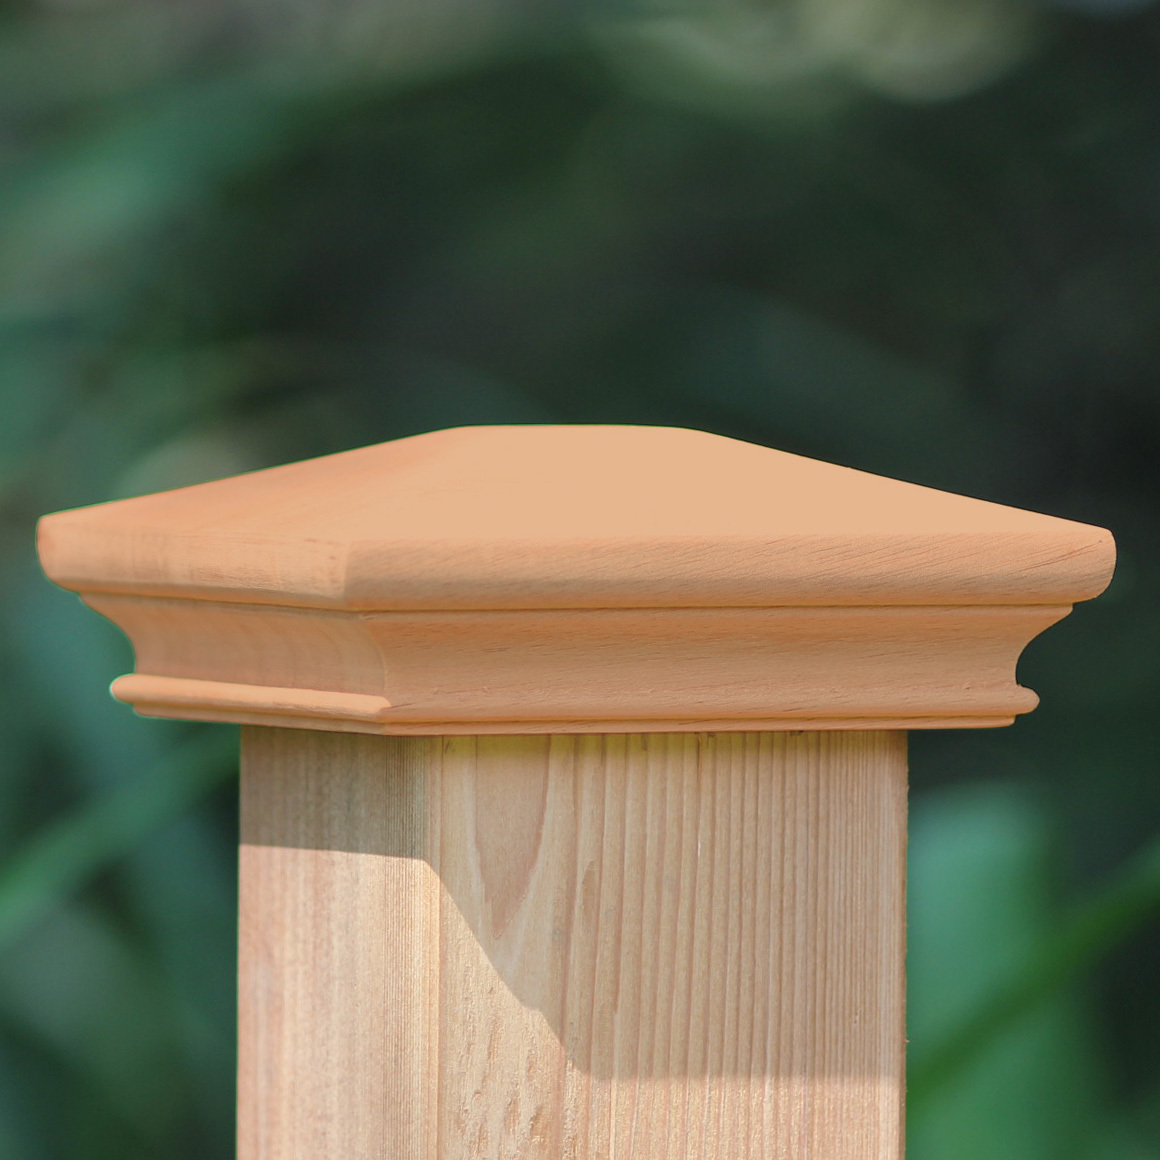 Image of: Wood Fence Post Caps